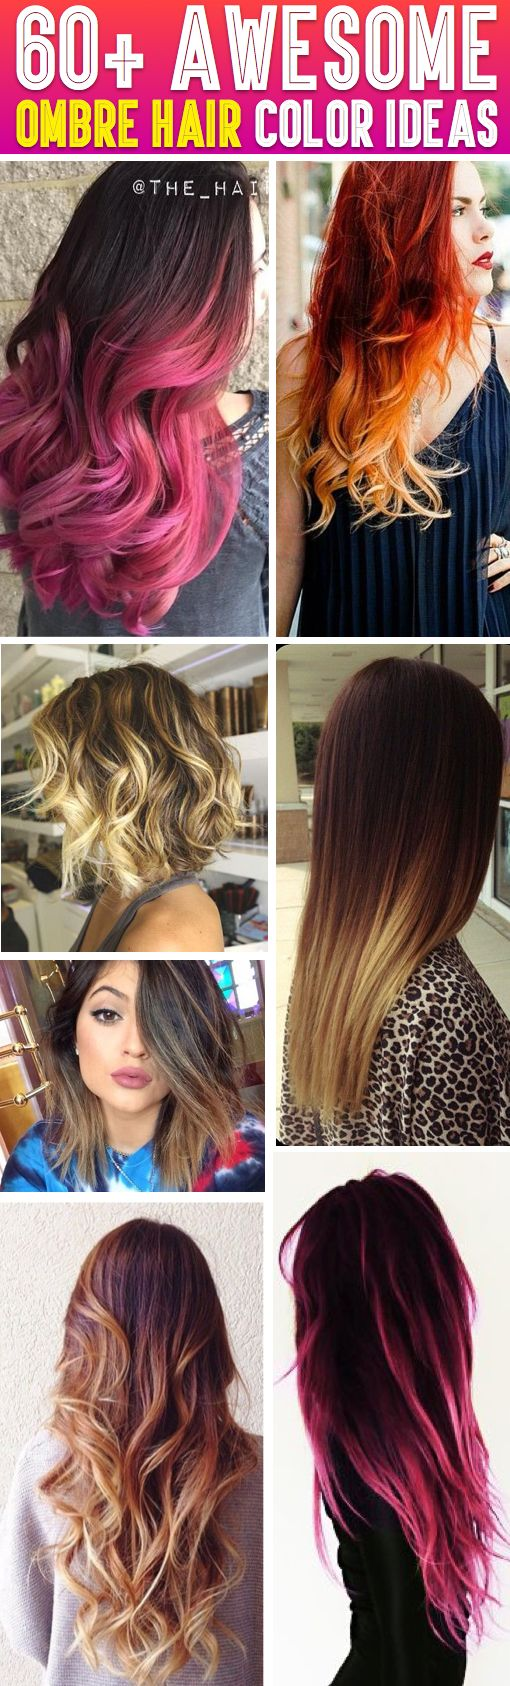 60 Awesome Diy Ombre Hair Color Ideas For 2017 Hair Pinterest